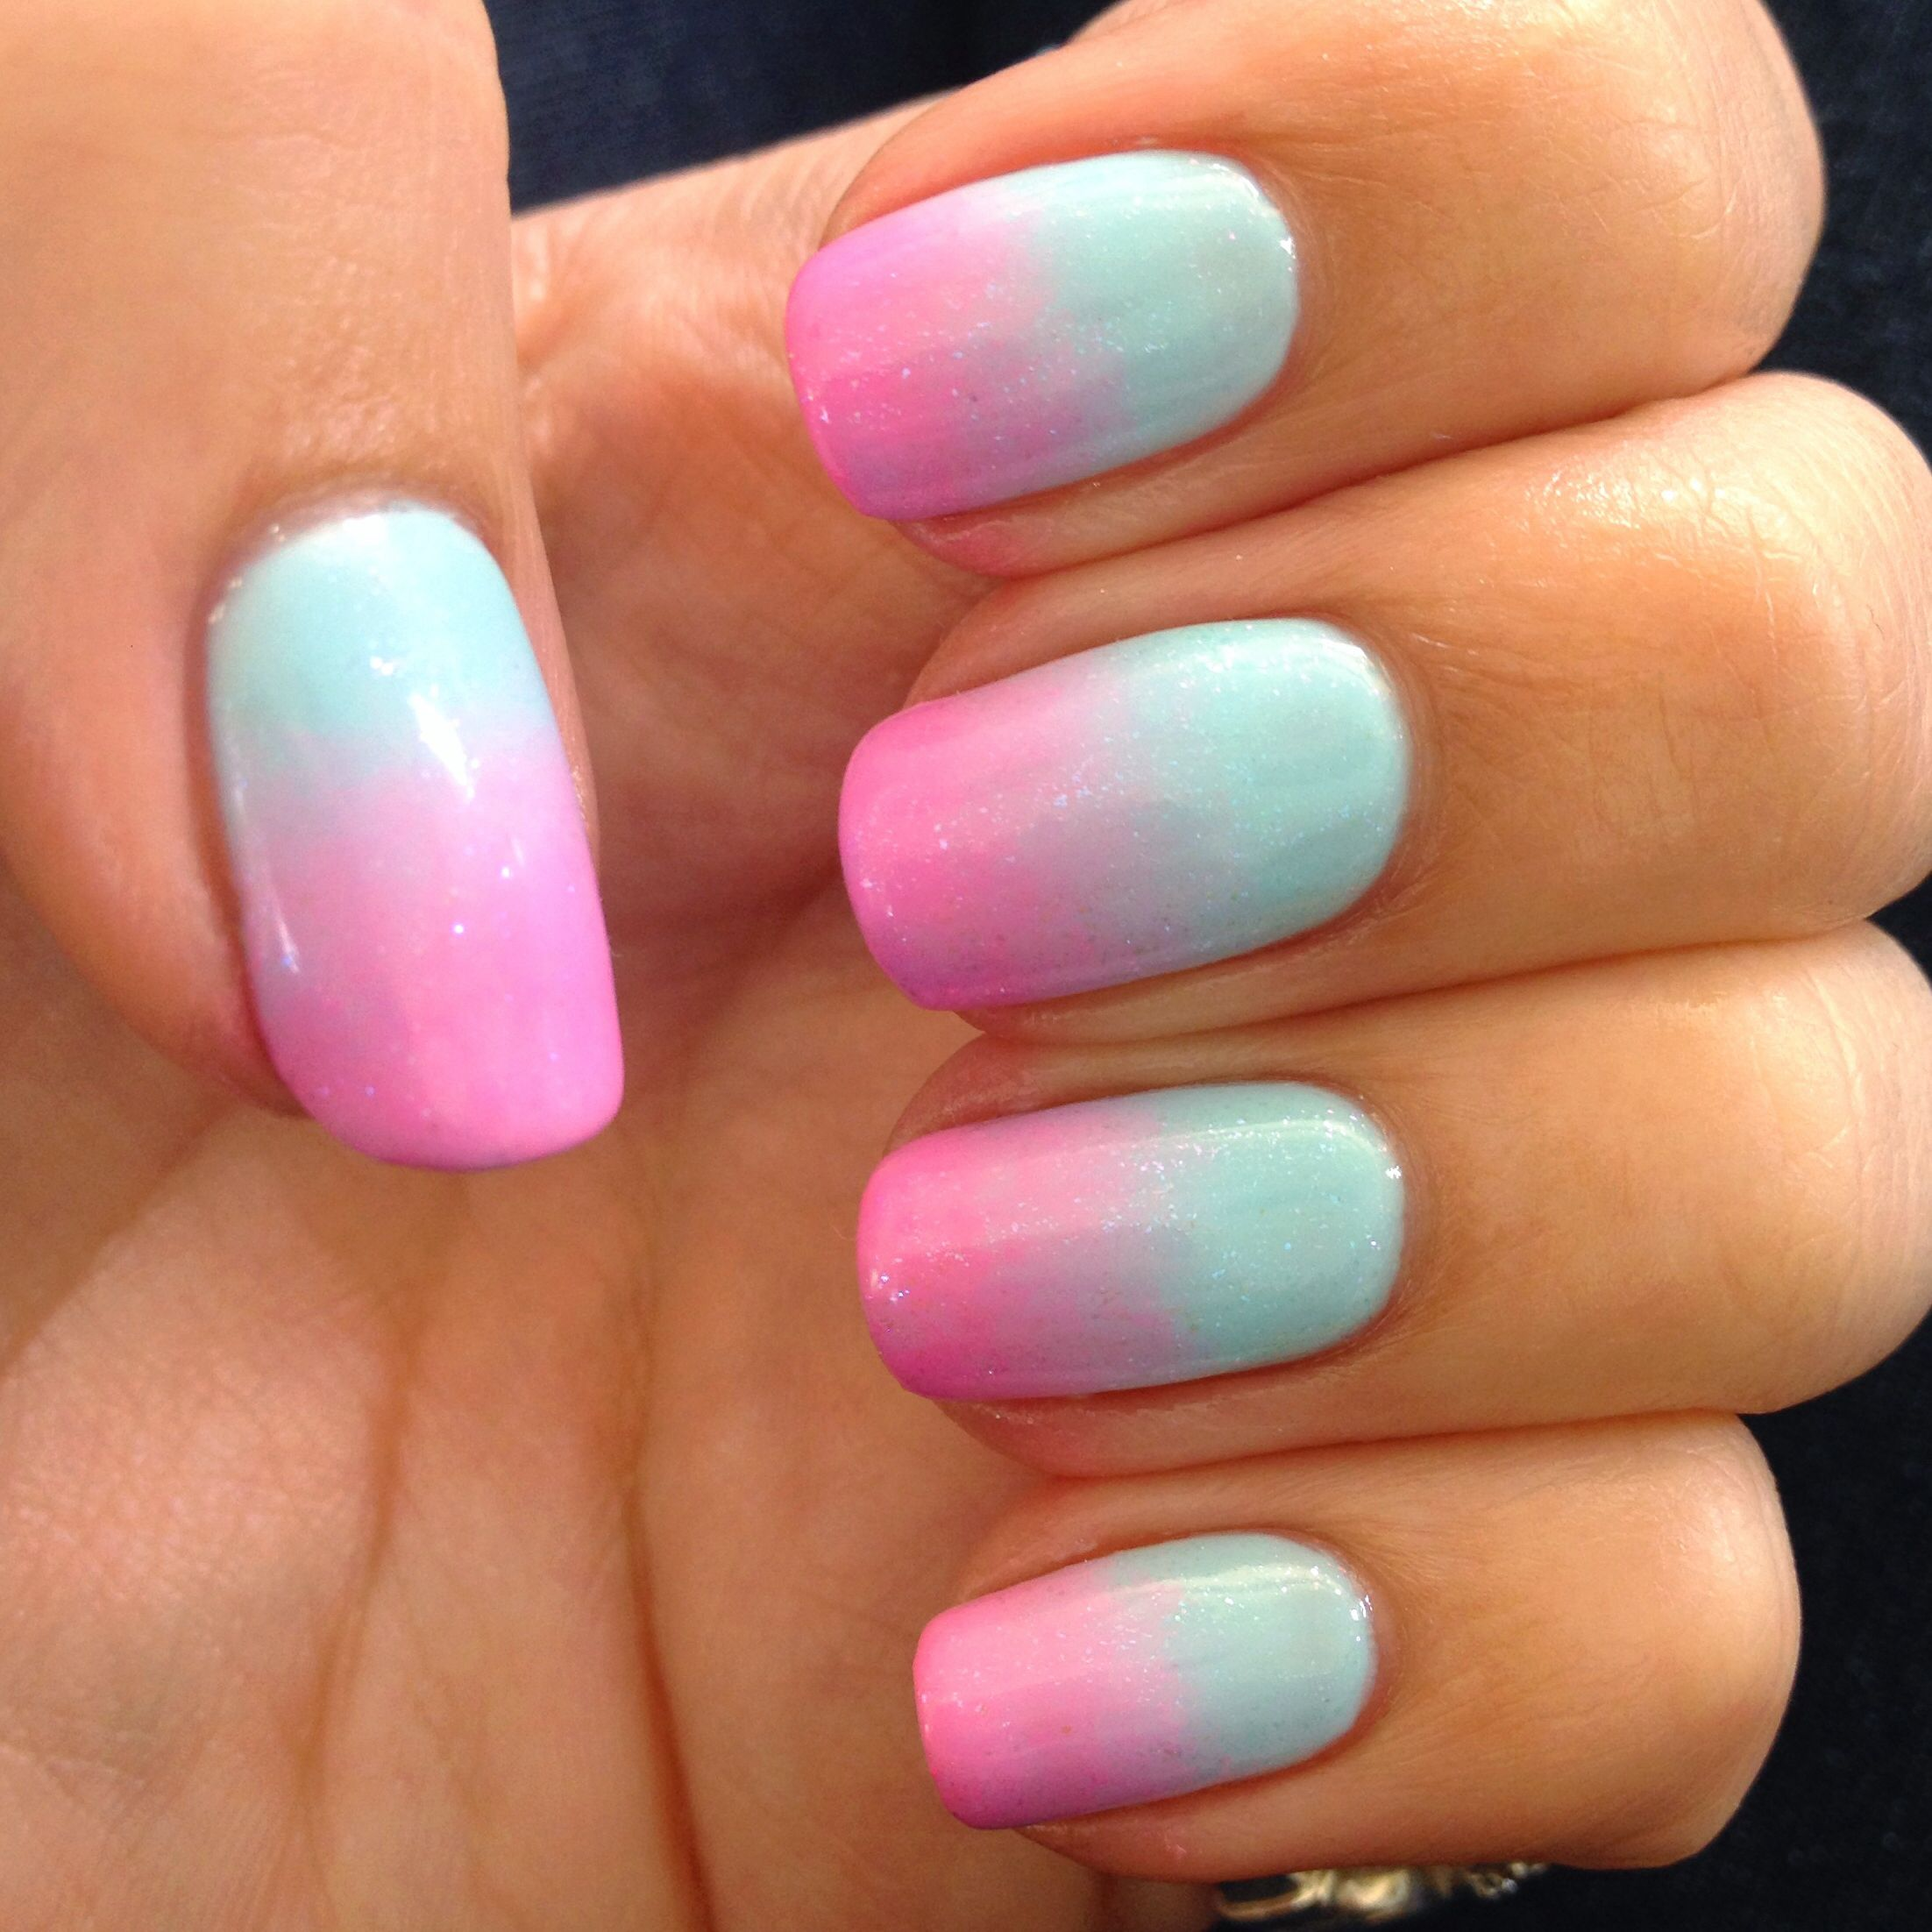 Blue and pink ombré nails using Gelish | Riley | Pinterest